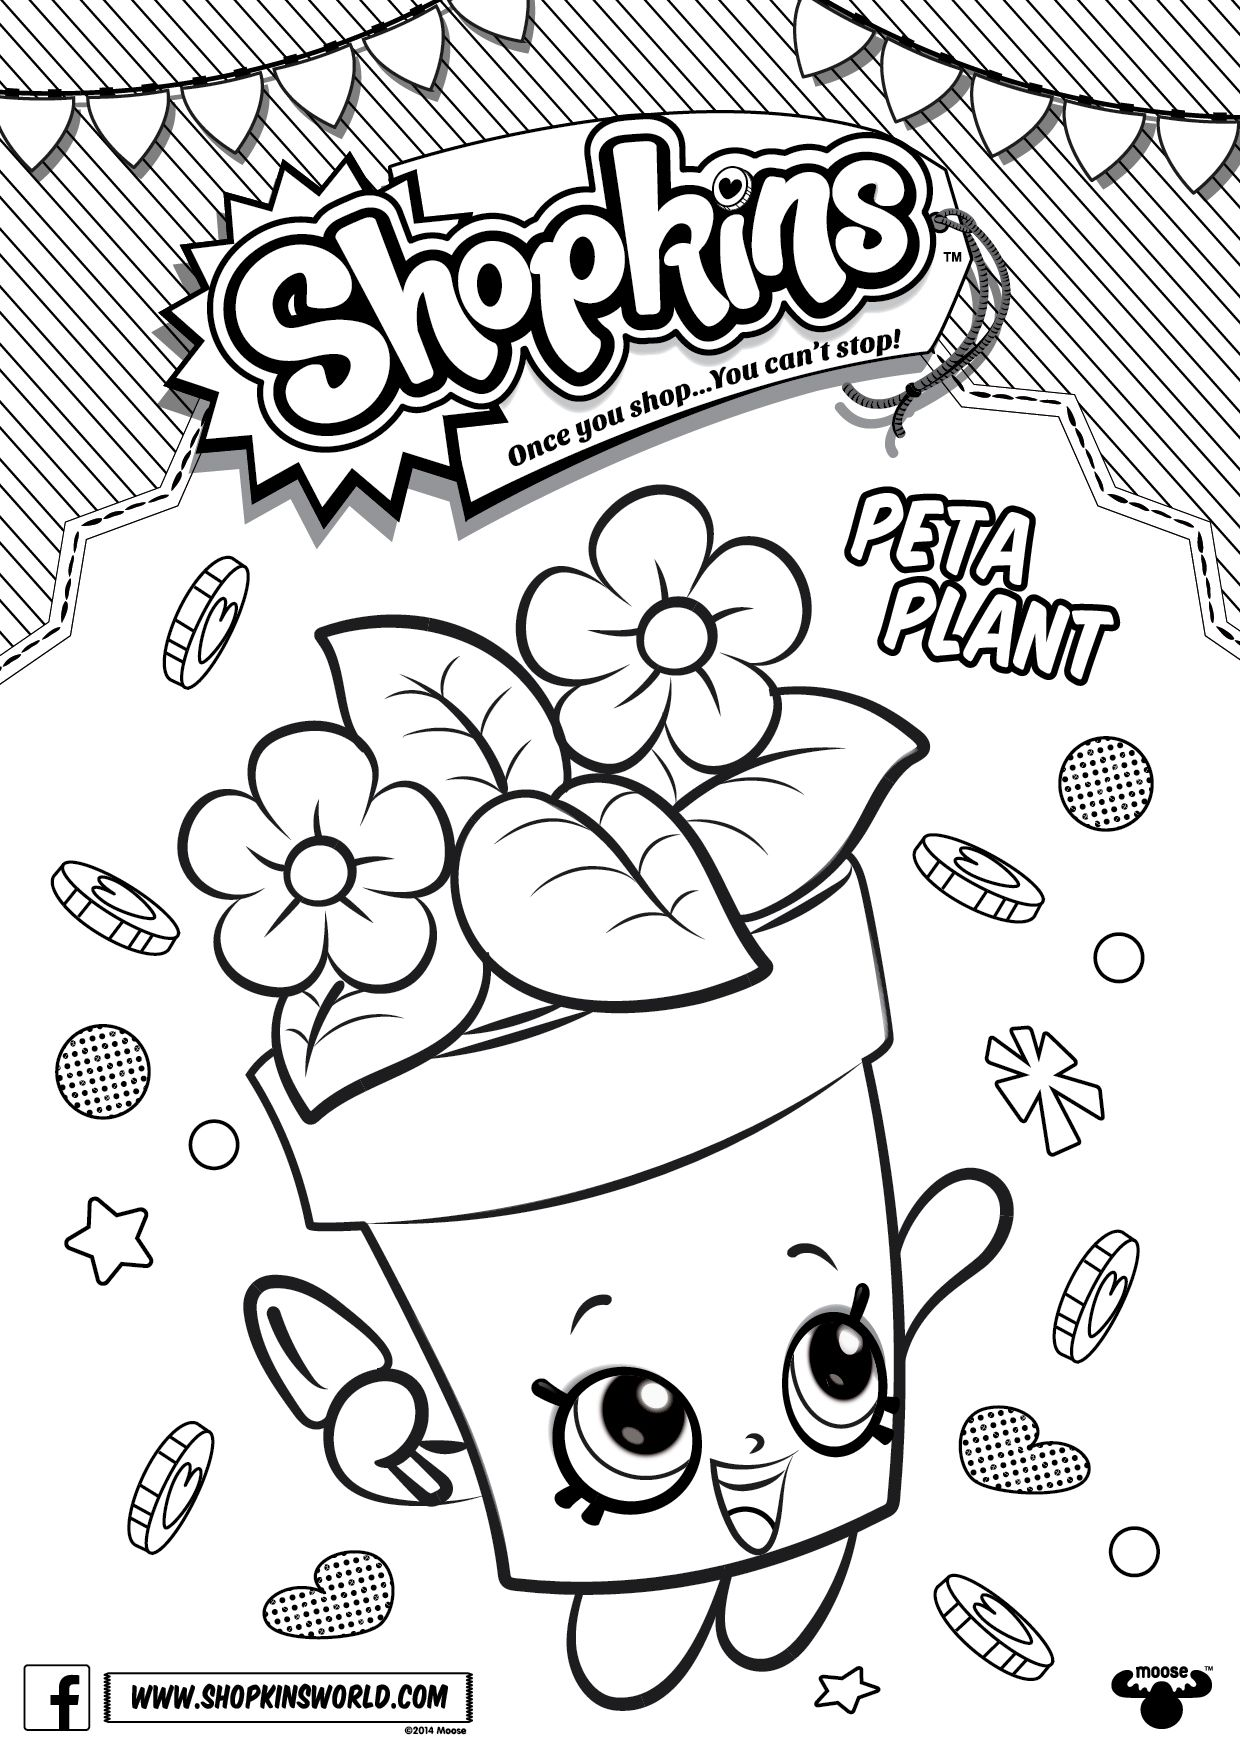 Shopkins Colour In Peta Plant